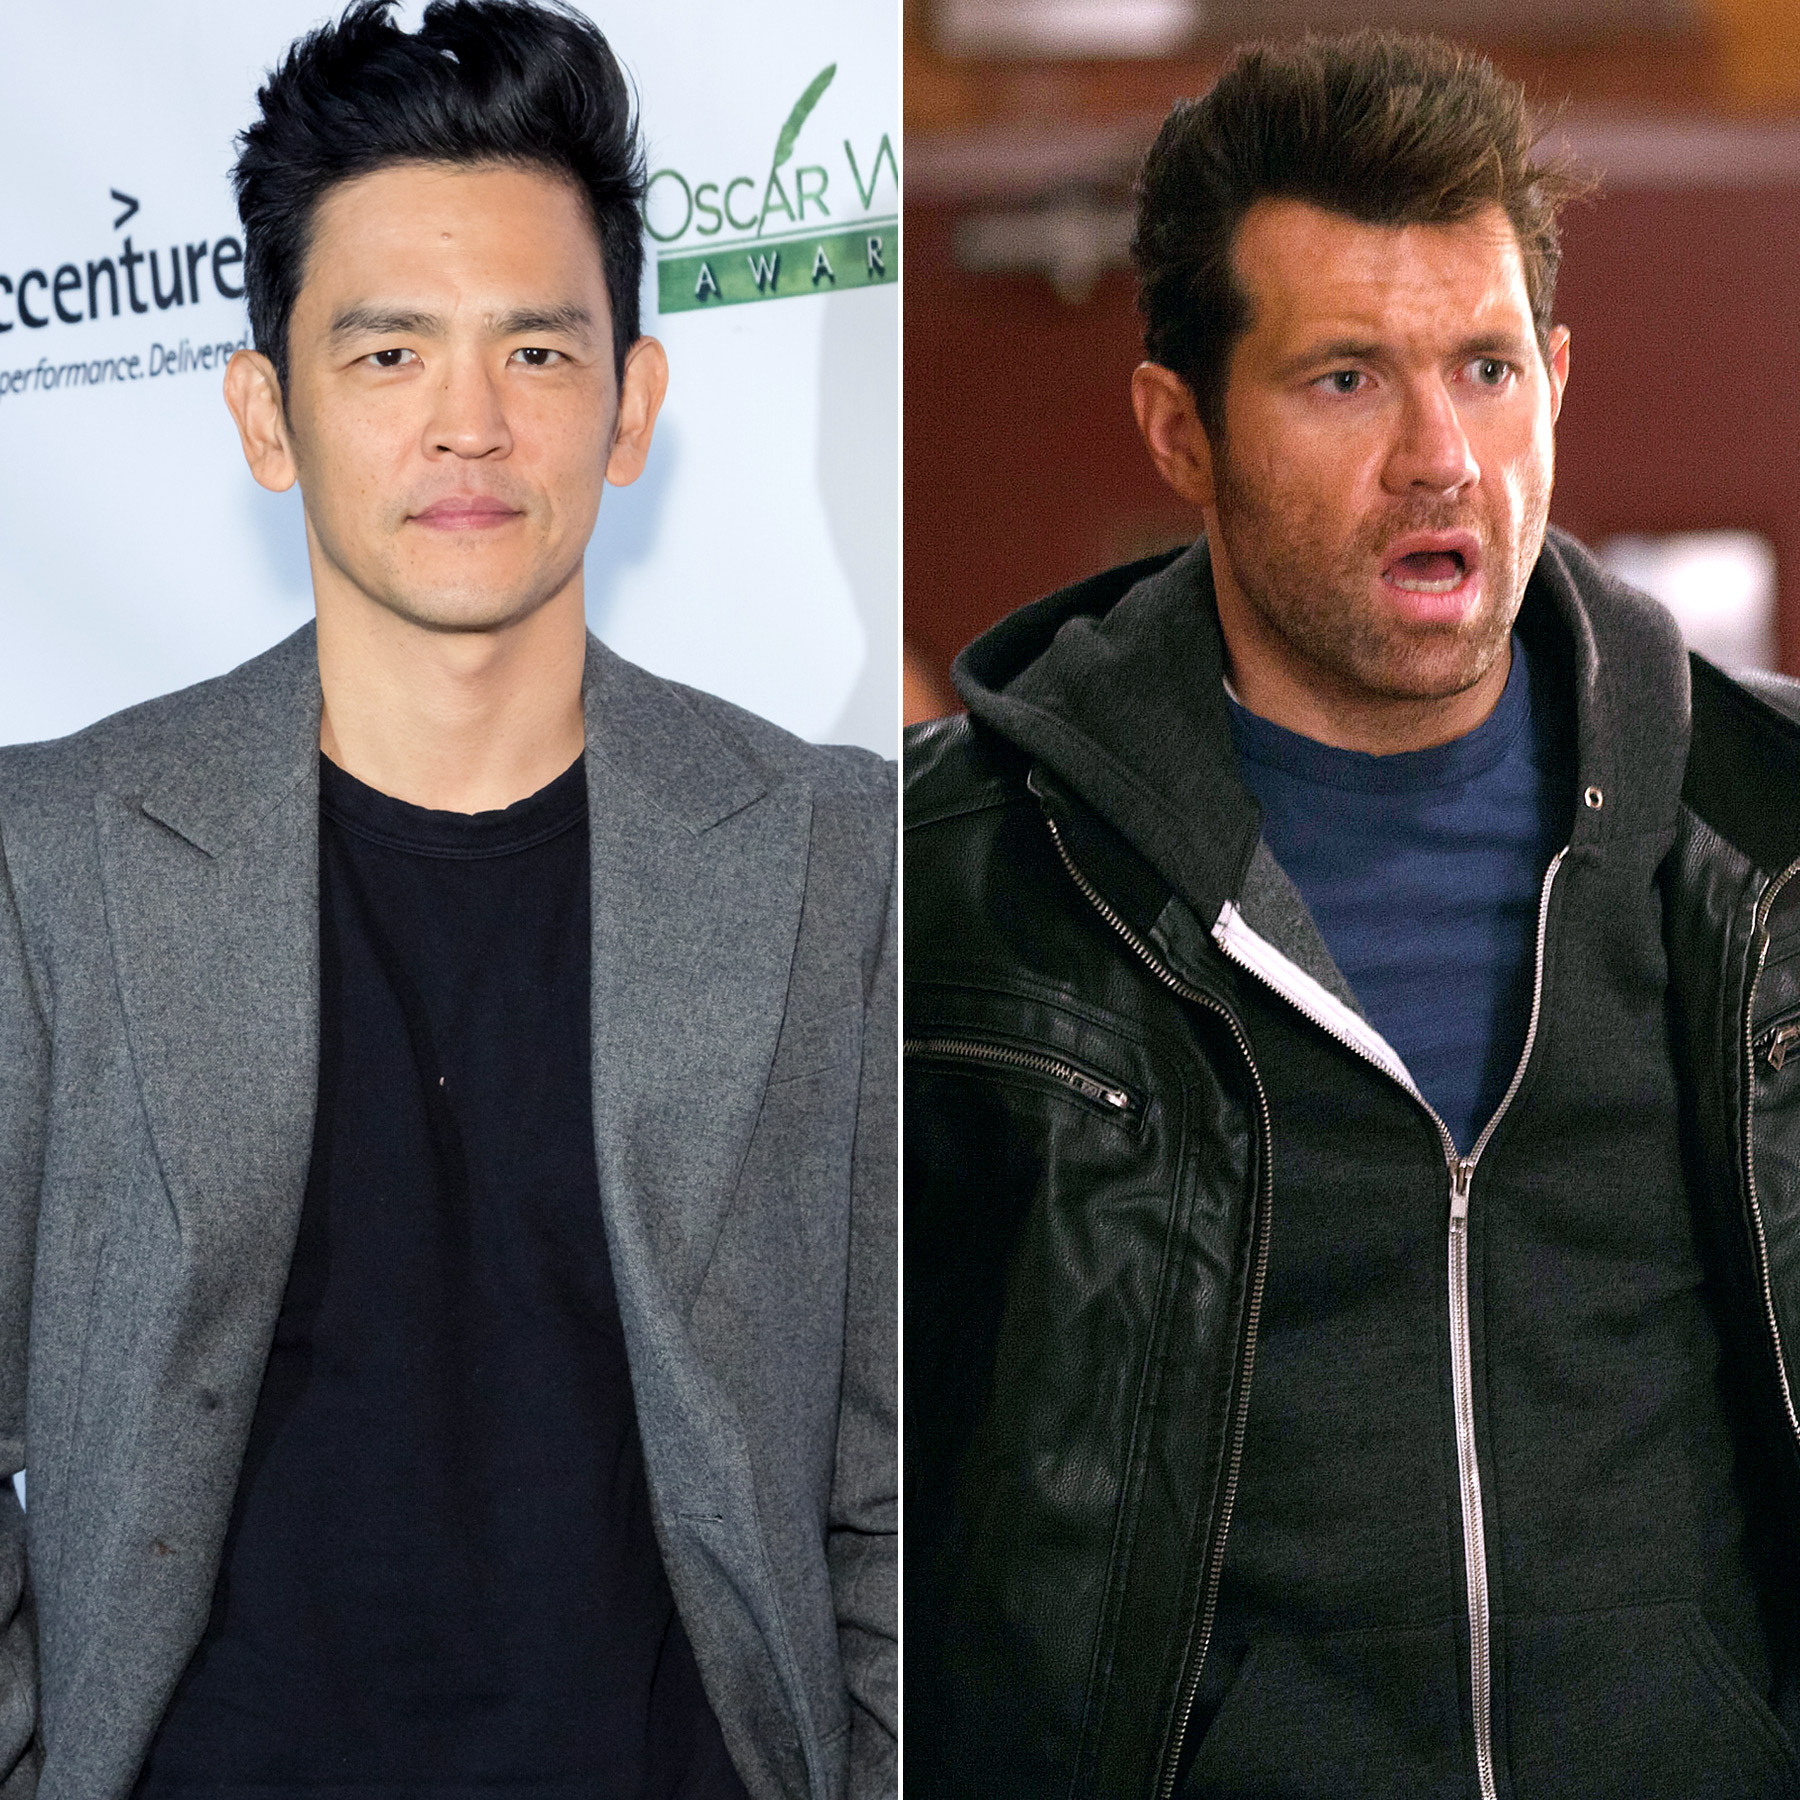 John Cho and Billy Eichner